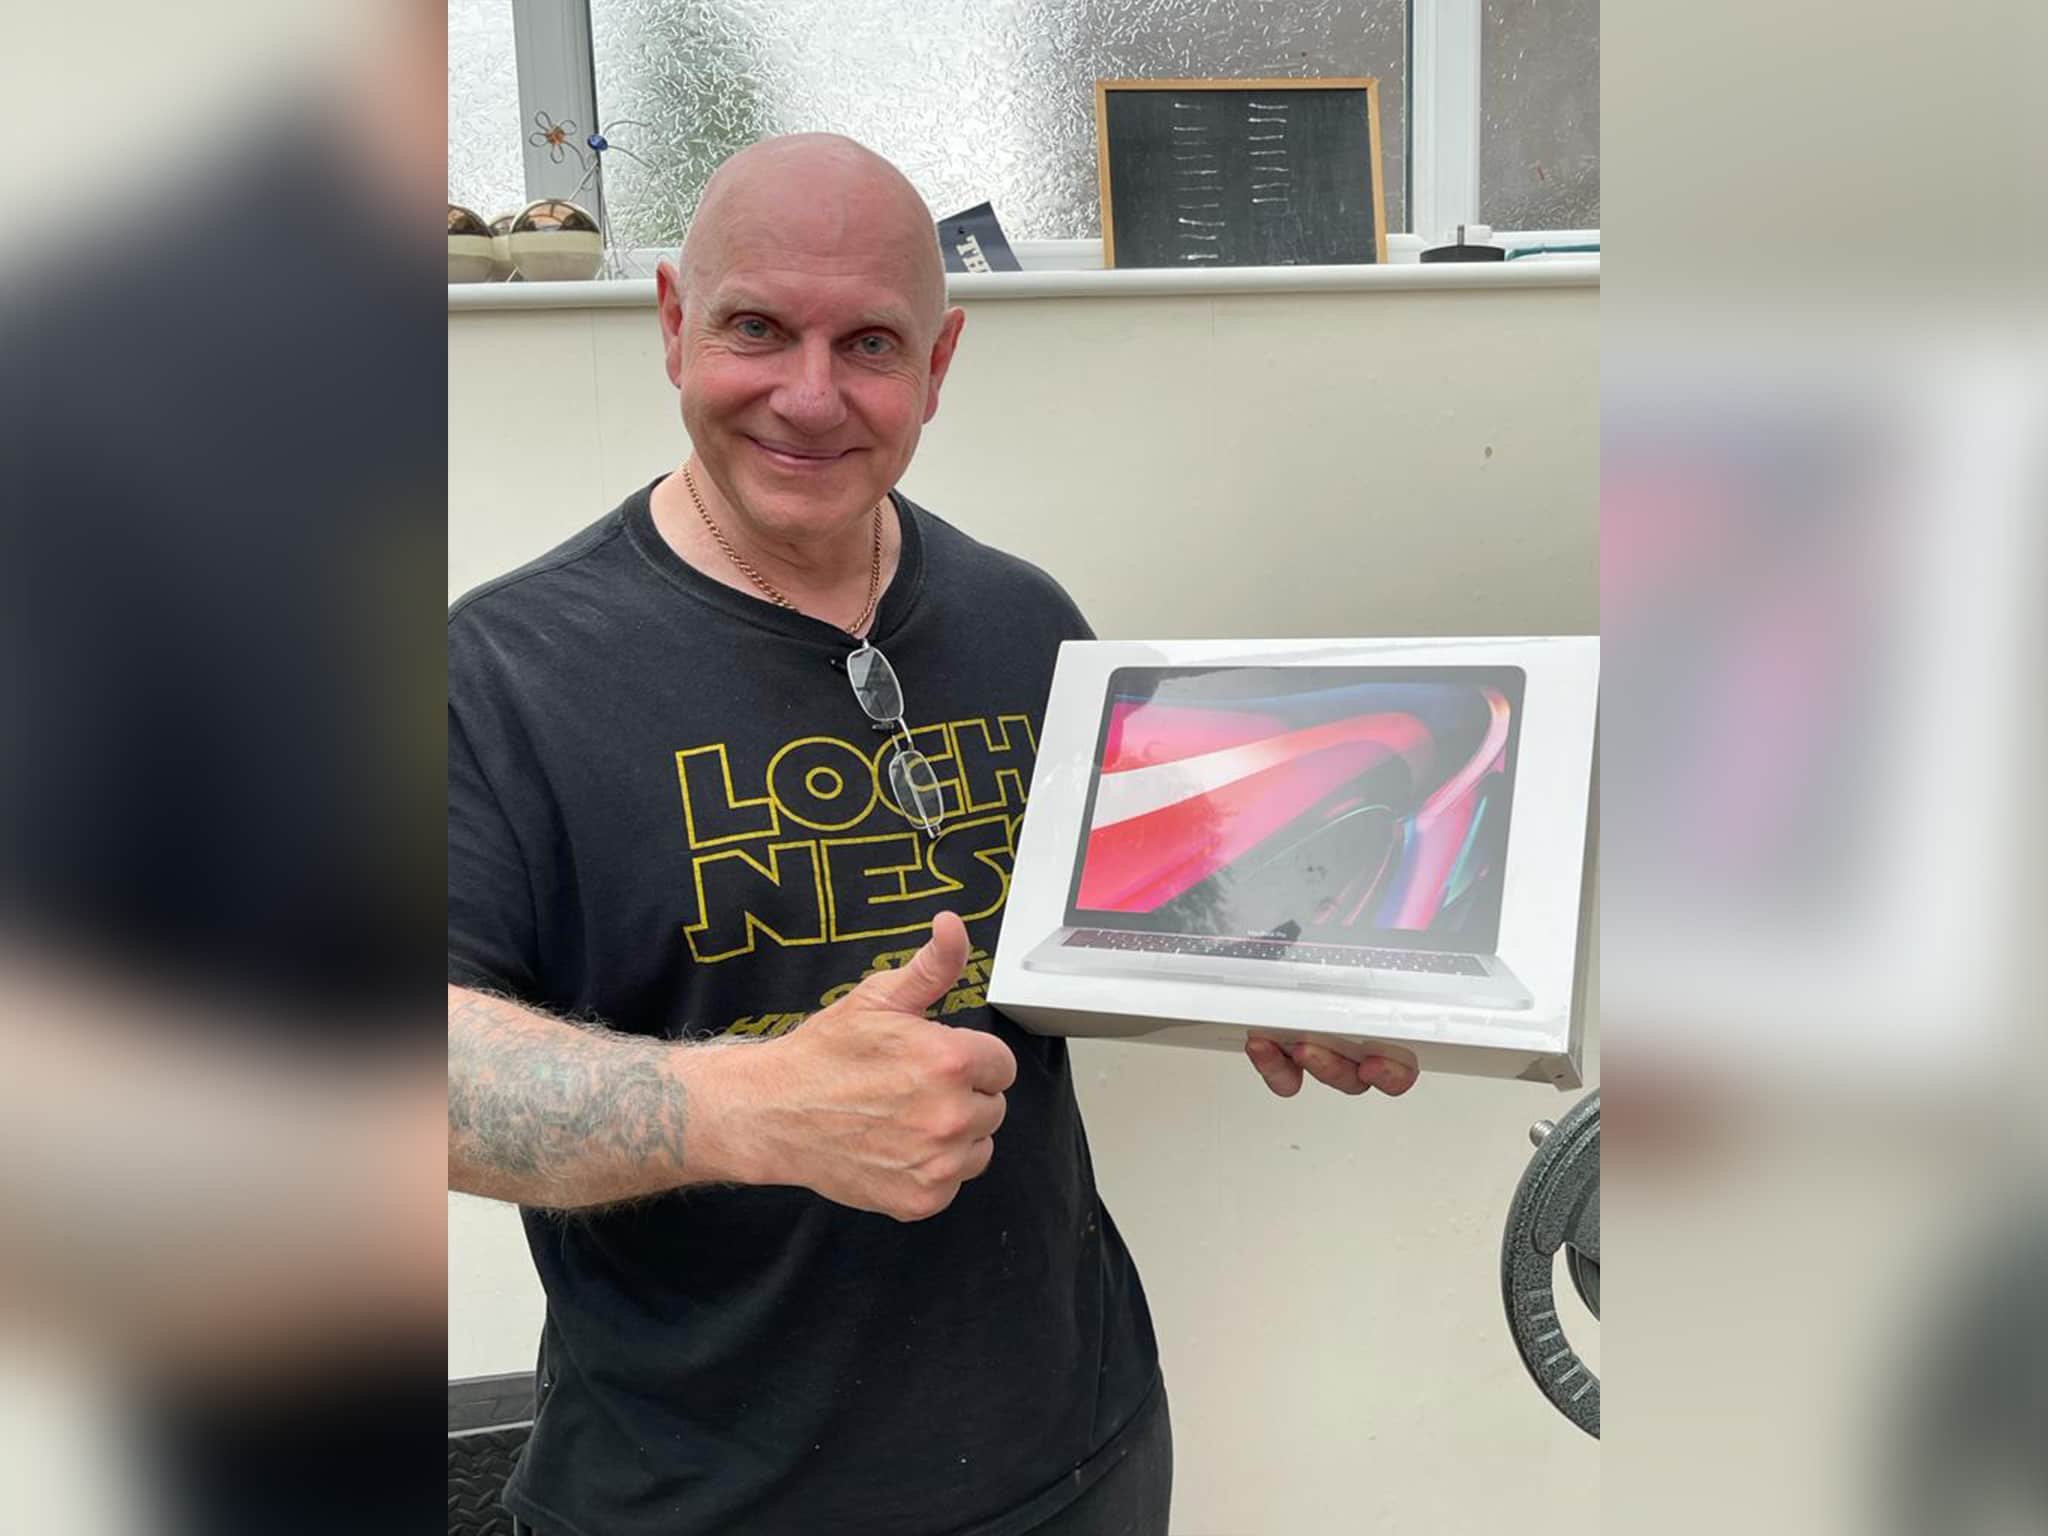 Winner Keith Henson of a New MacBook Pro with Touch Bar (2021) with M1 Chip - 9th Aug